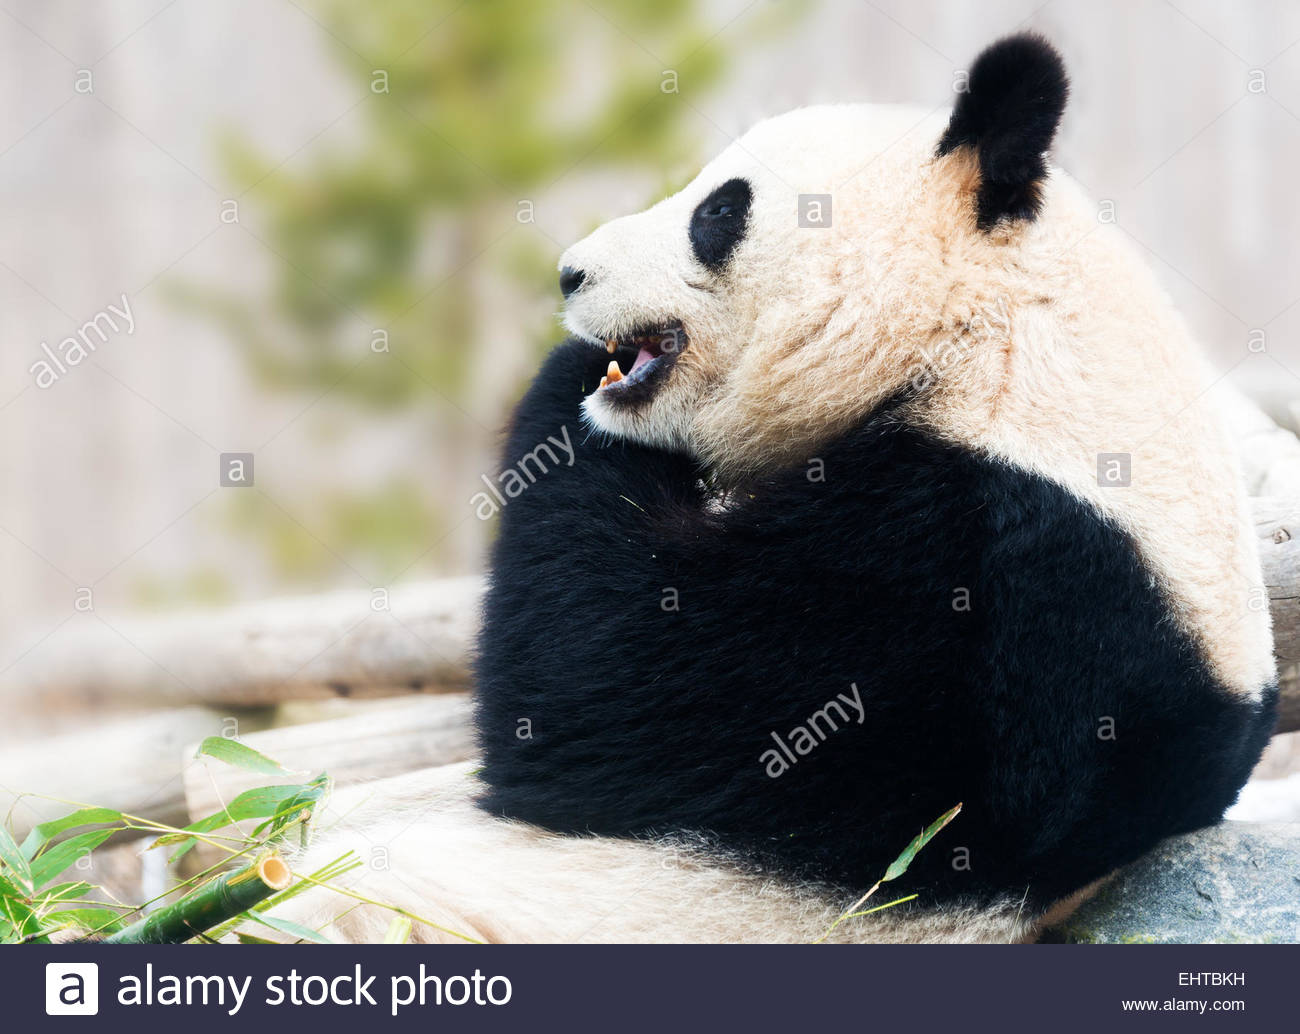 Big Panda bear resting on rock and eating bamboo during daytime - Stock Image